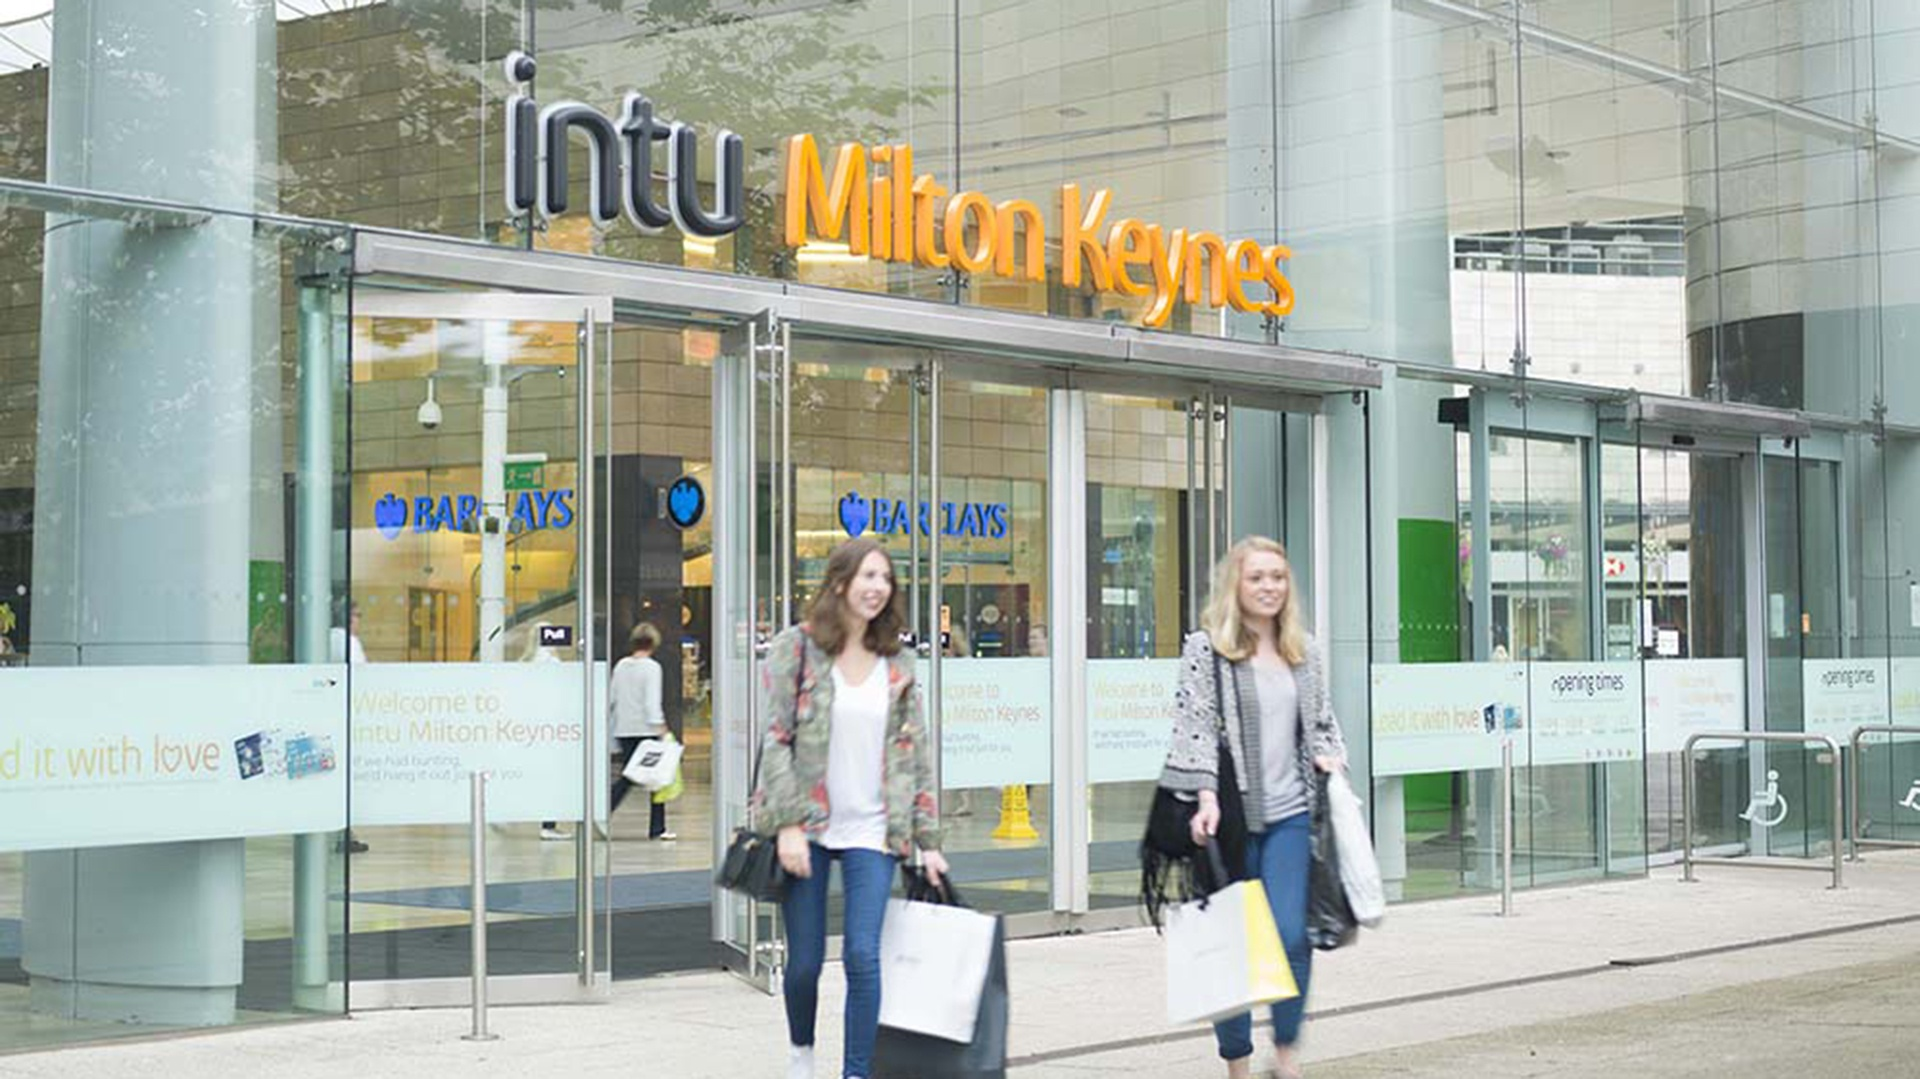 NEXT to open new beauty store at intu Milton Keynes